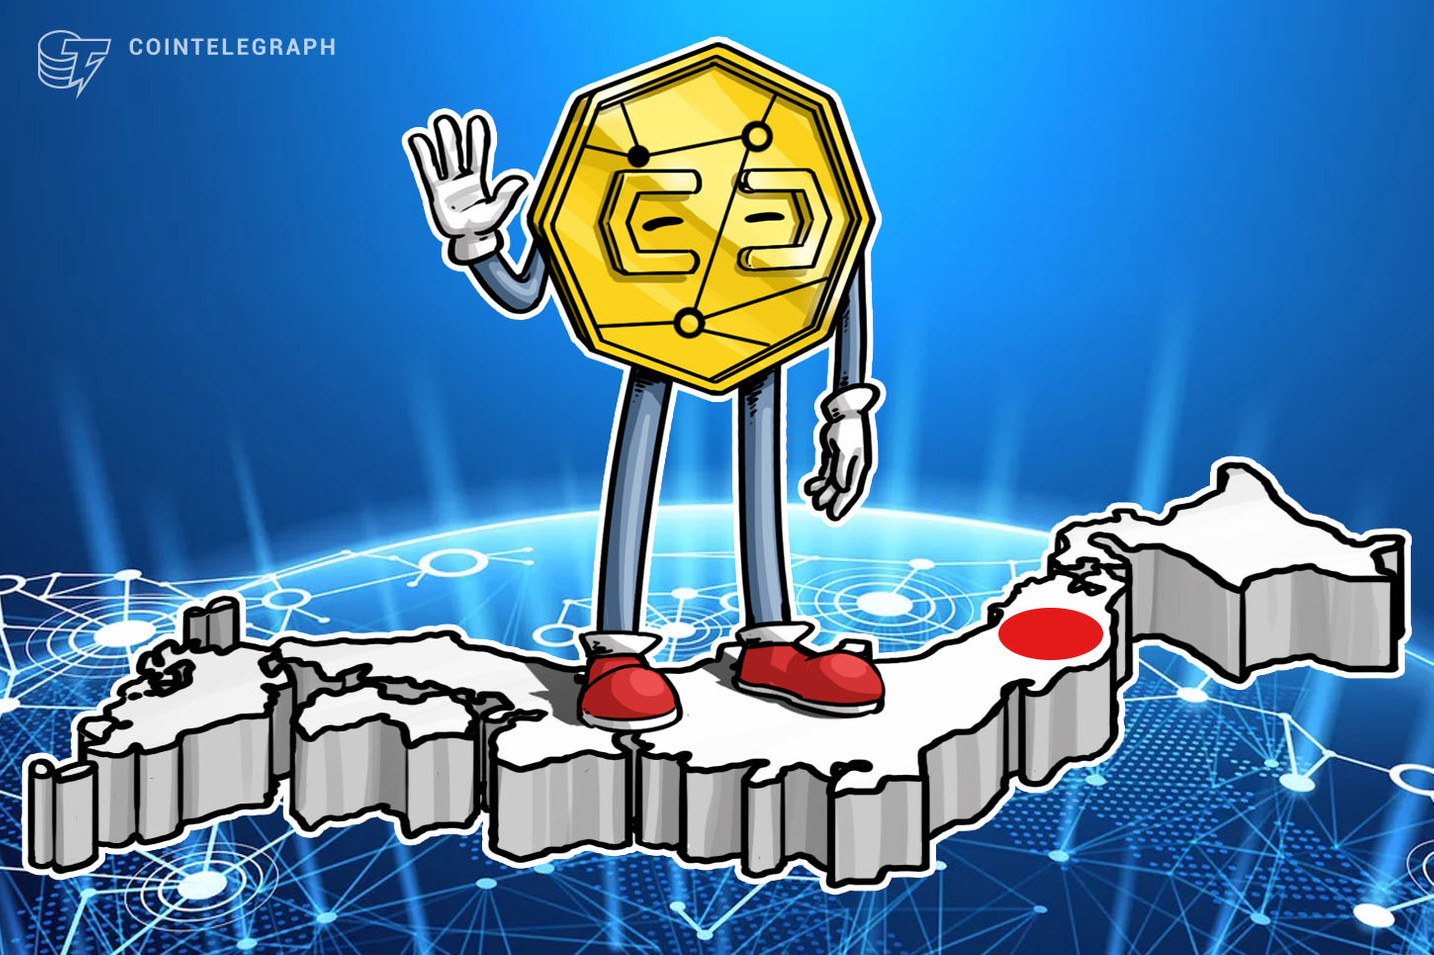 Japan's Financial Watchdog Seeks to Regulate Unregistered Crypto Investment Firms